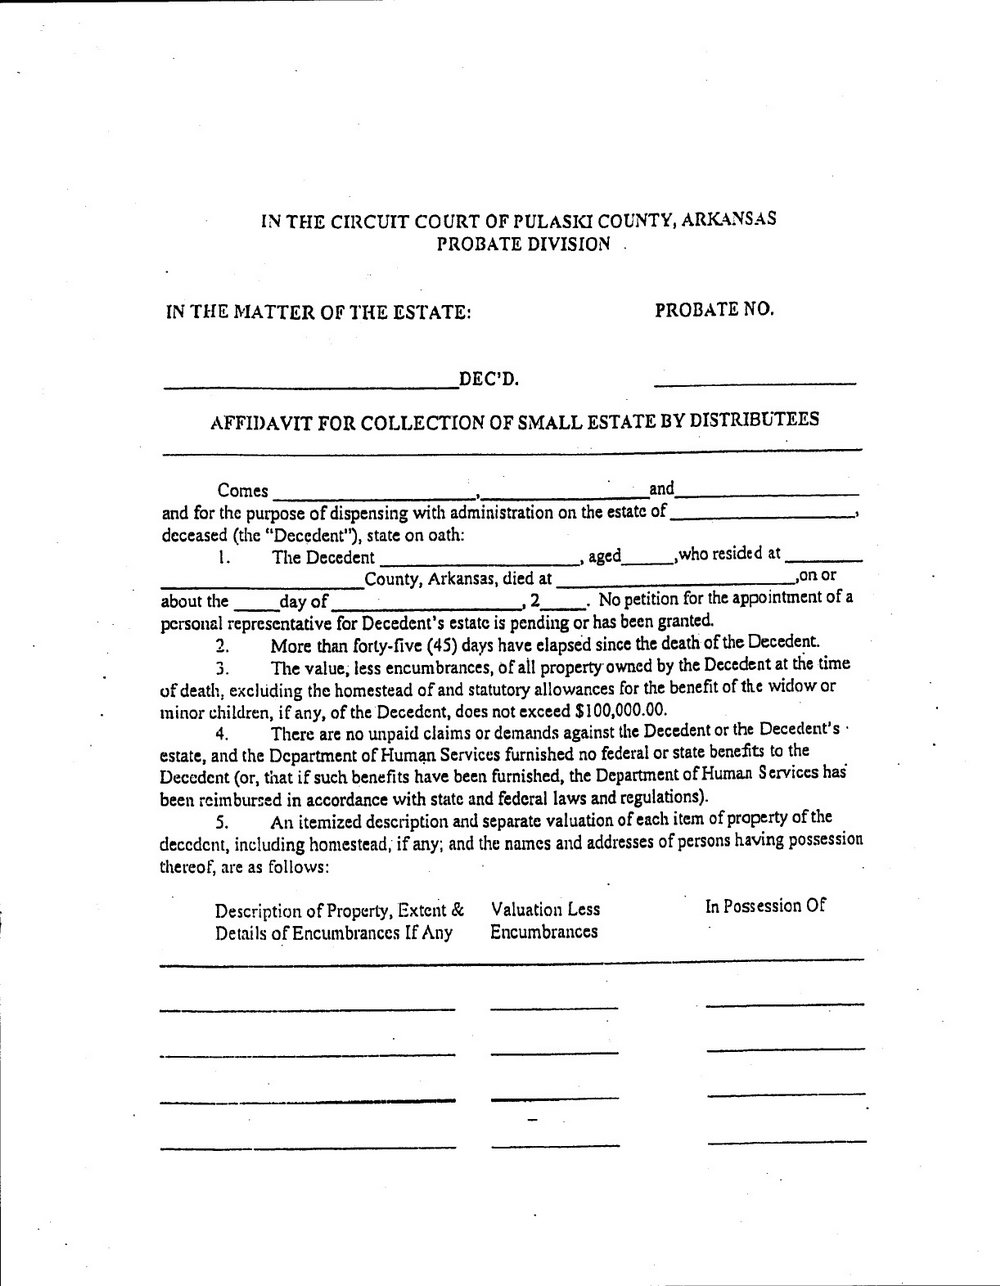 Small Estate Affidavit Form Illinois